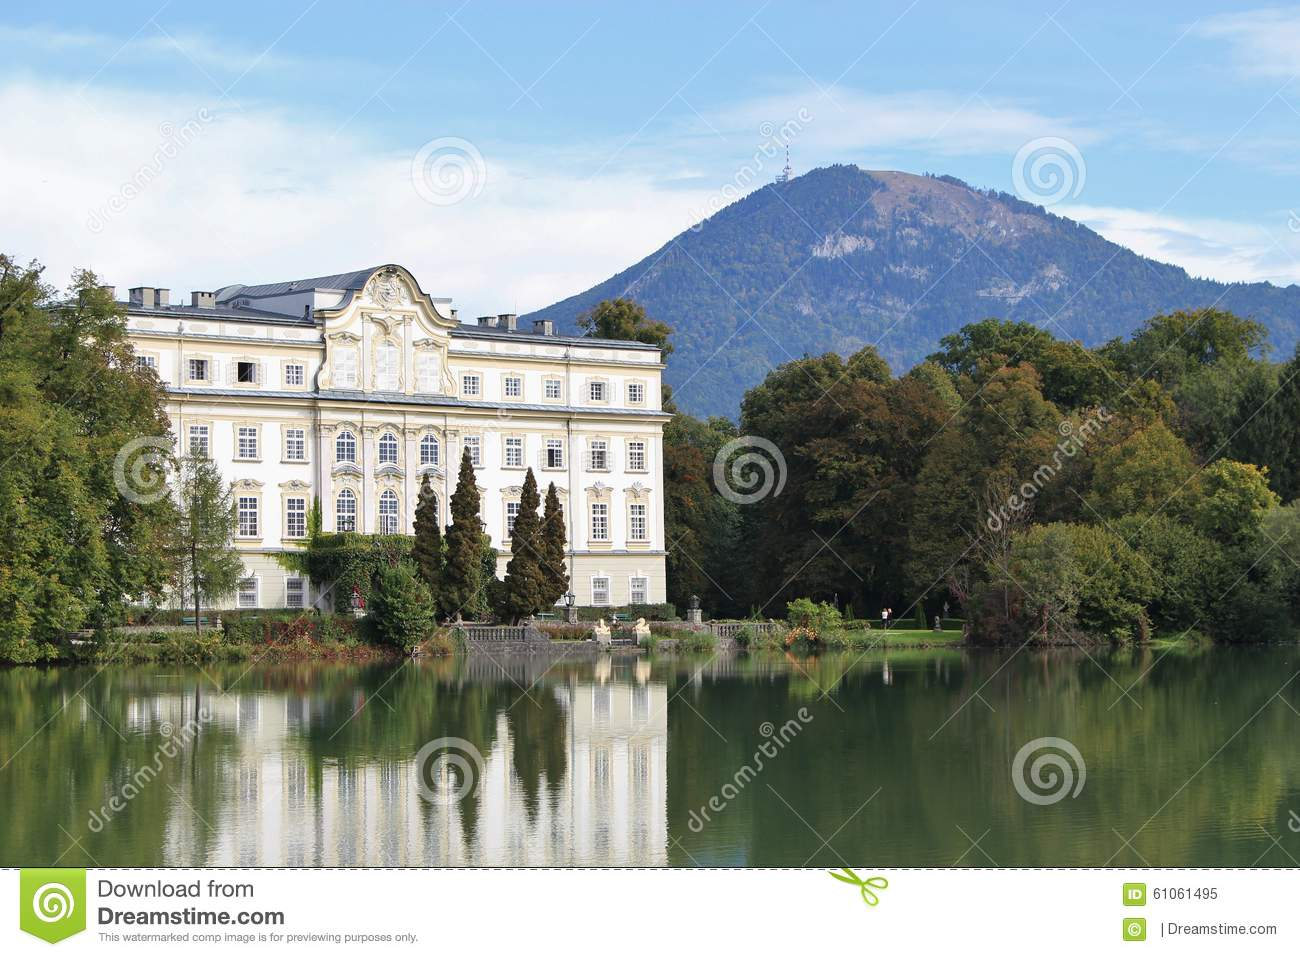 Leopoldskron Palace In Salzburg, Austria, Europe, With Gaisberg.